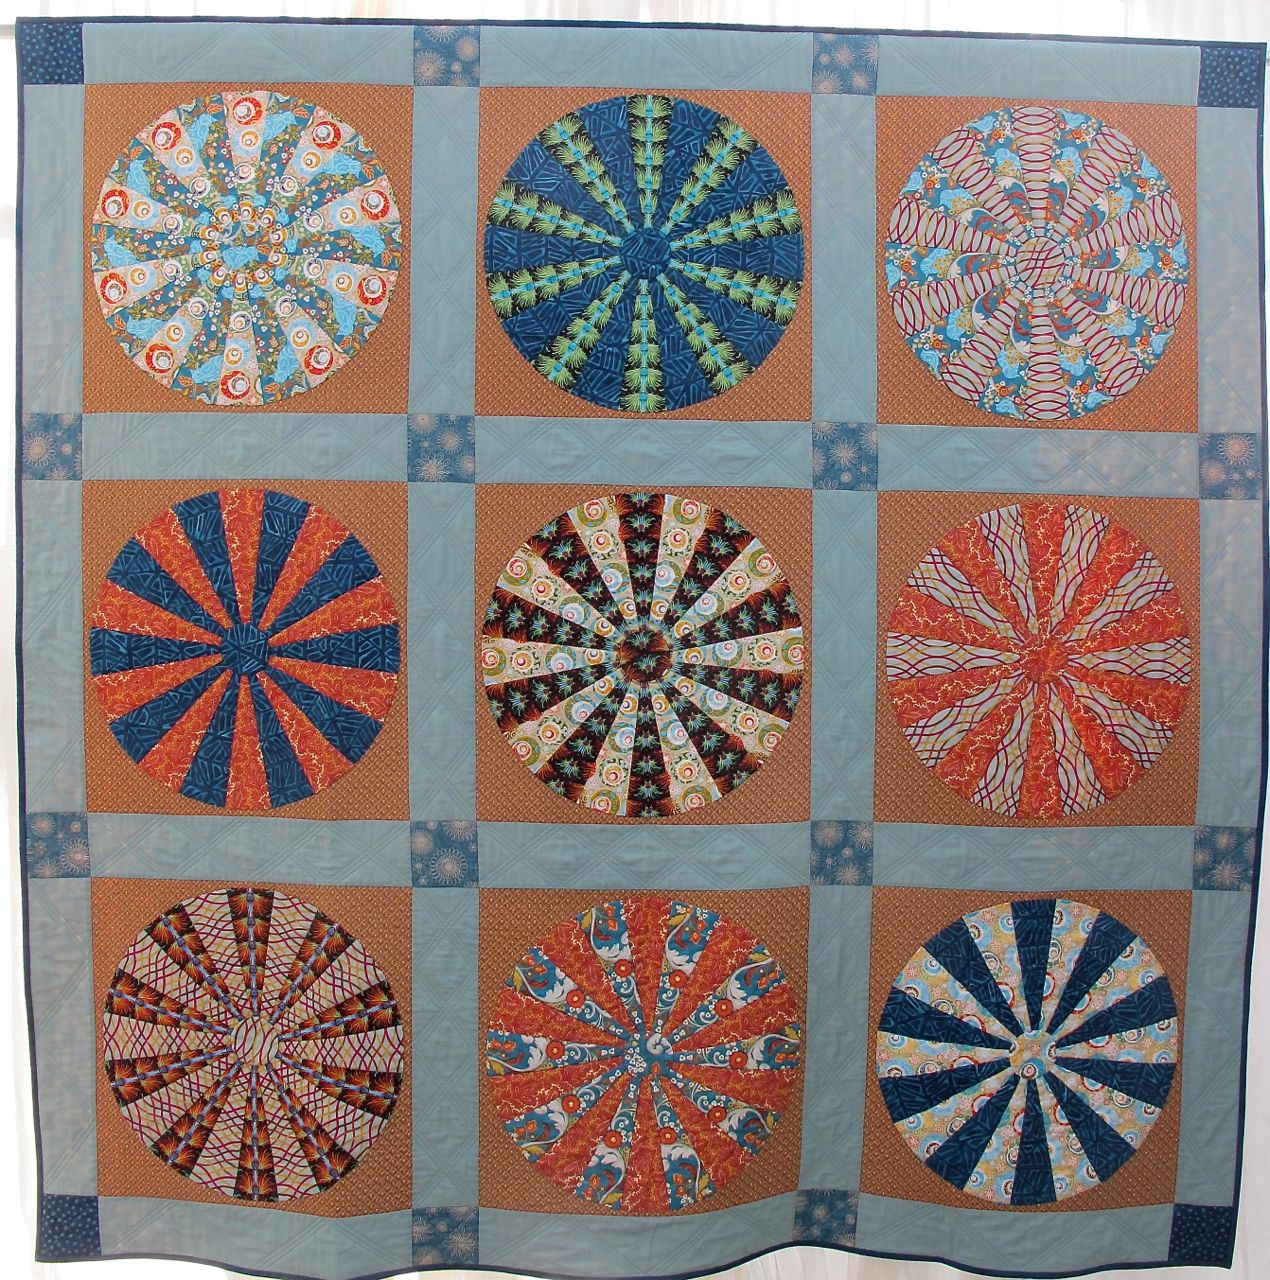 Mary Jo Morris. Kathy Doughty | The Plaid Portico : kathy doughty making quilts - Adamdwight.com